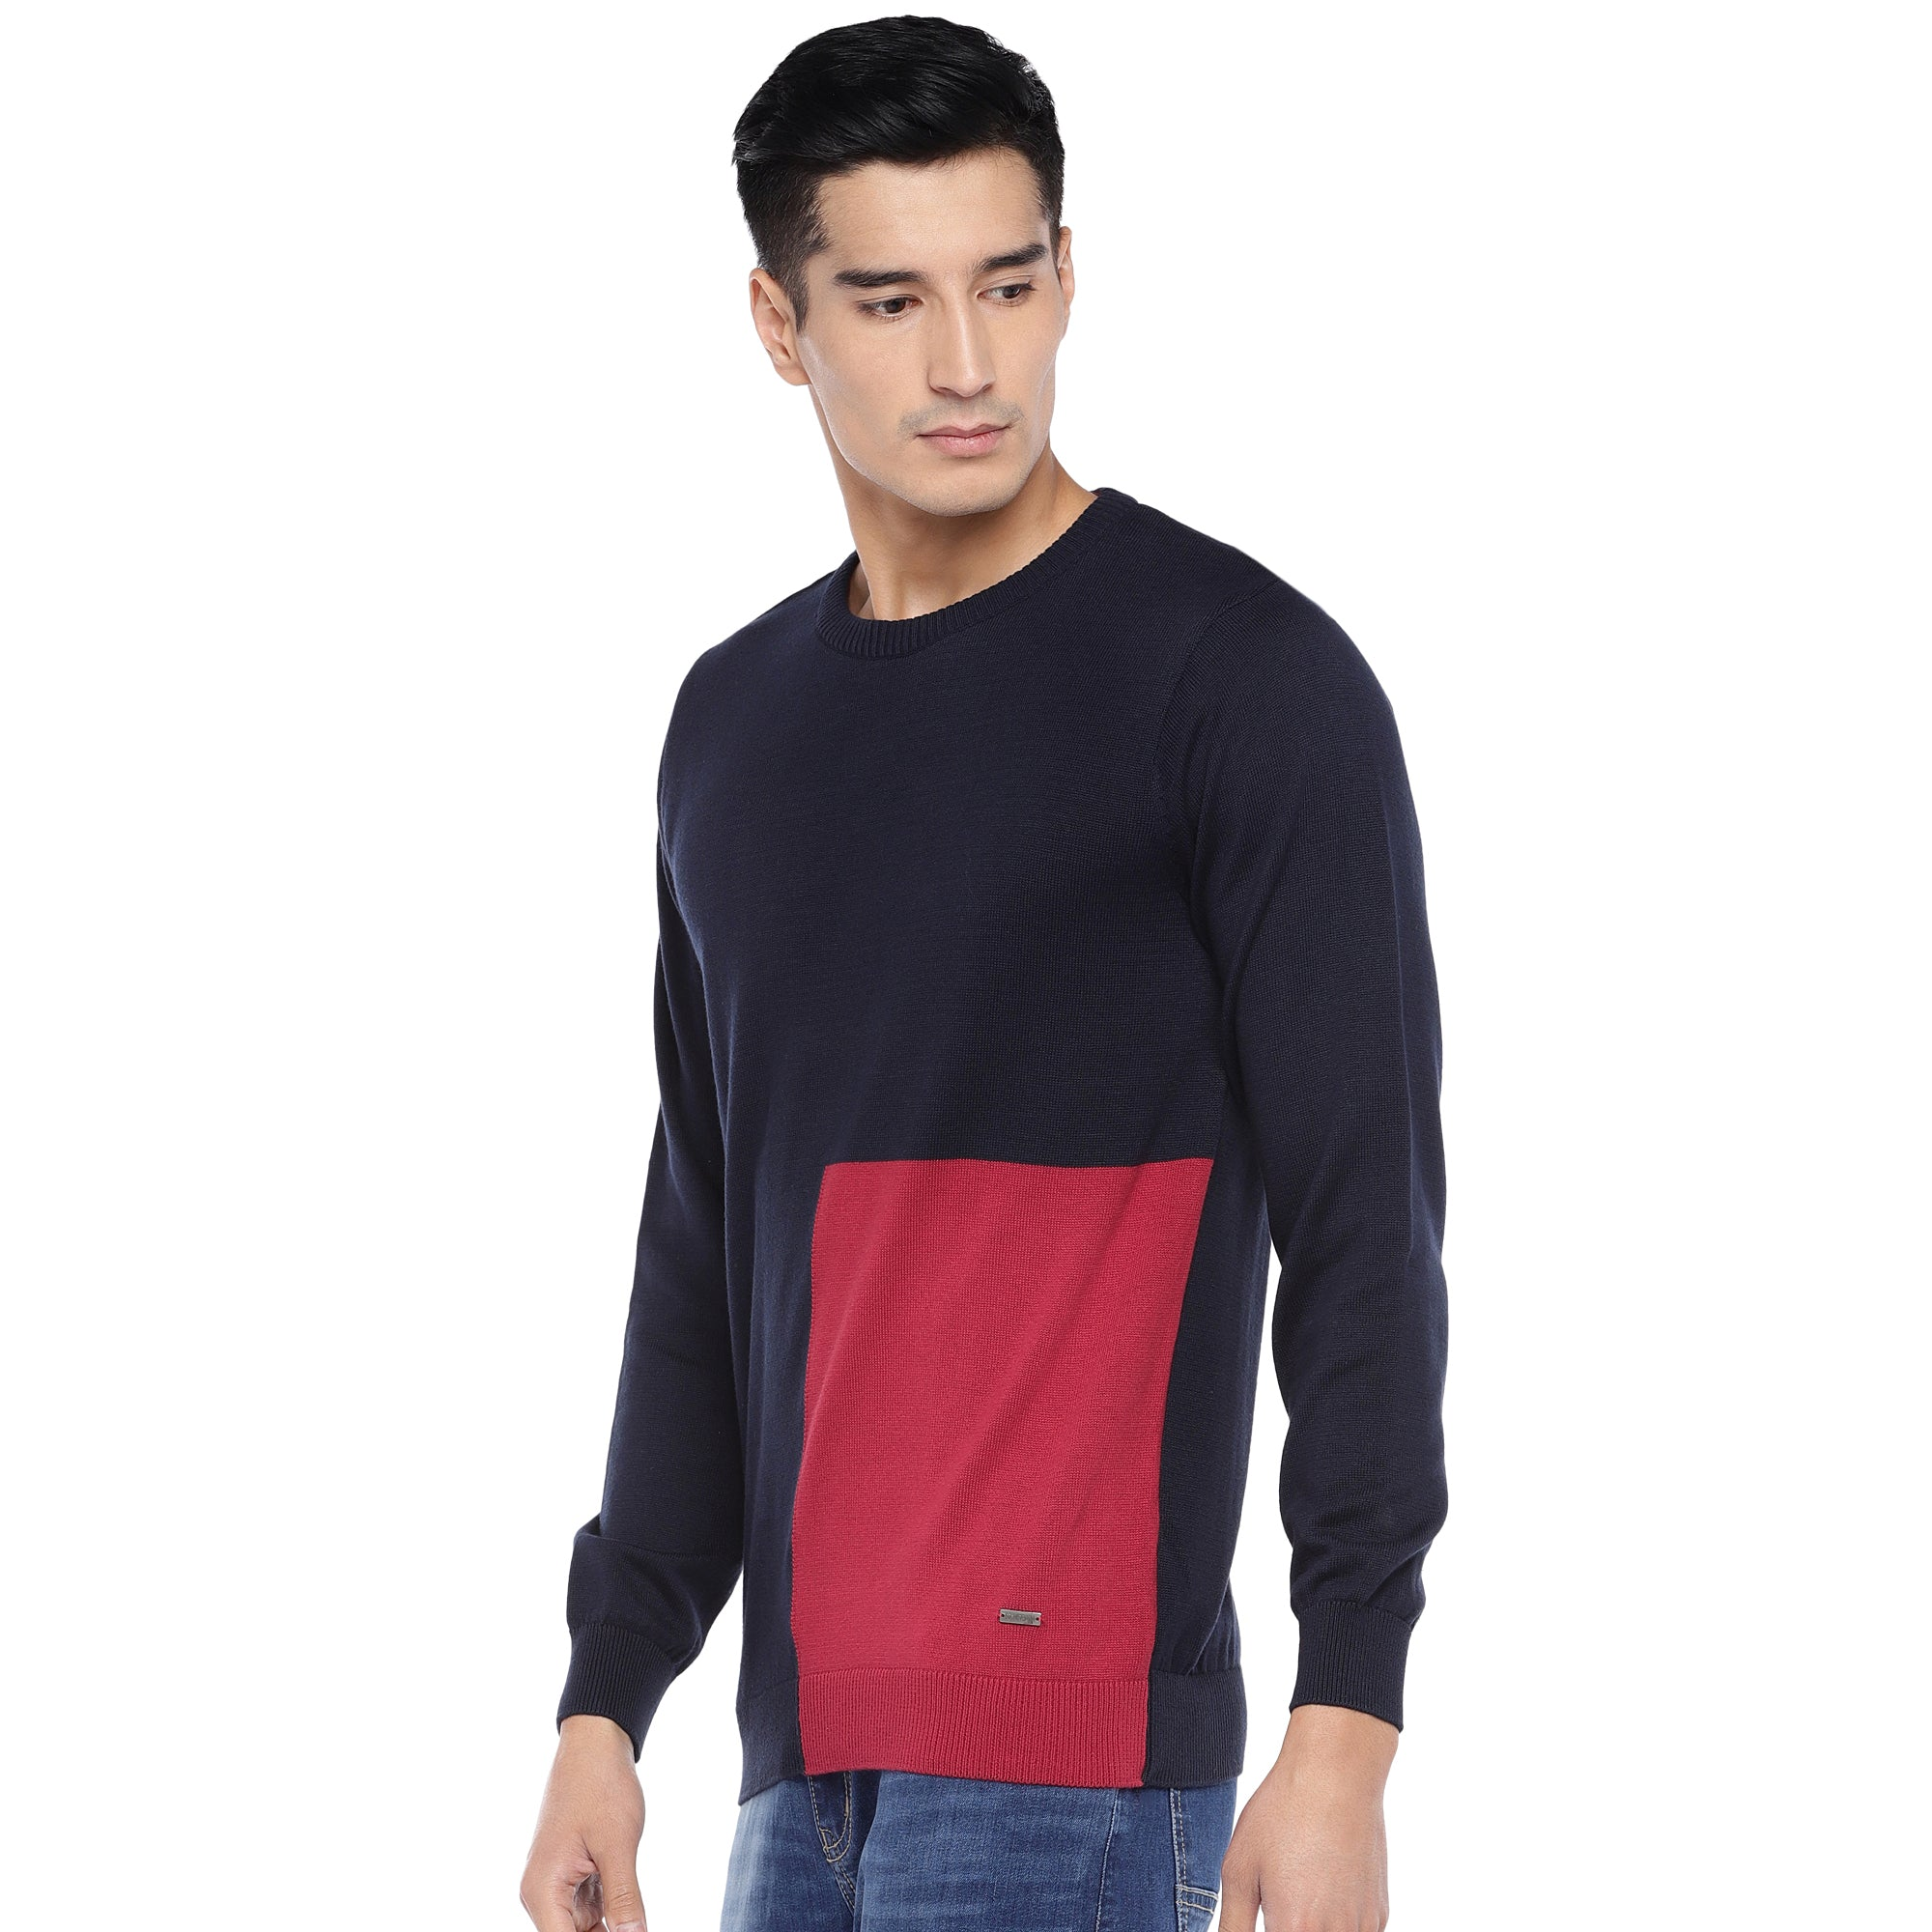 Navy Blue & Red Colourblocked Sweatshirt-2